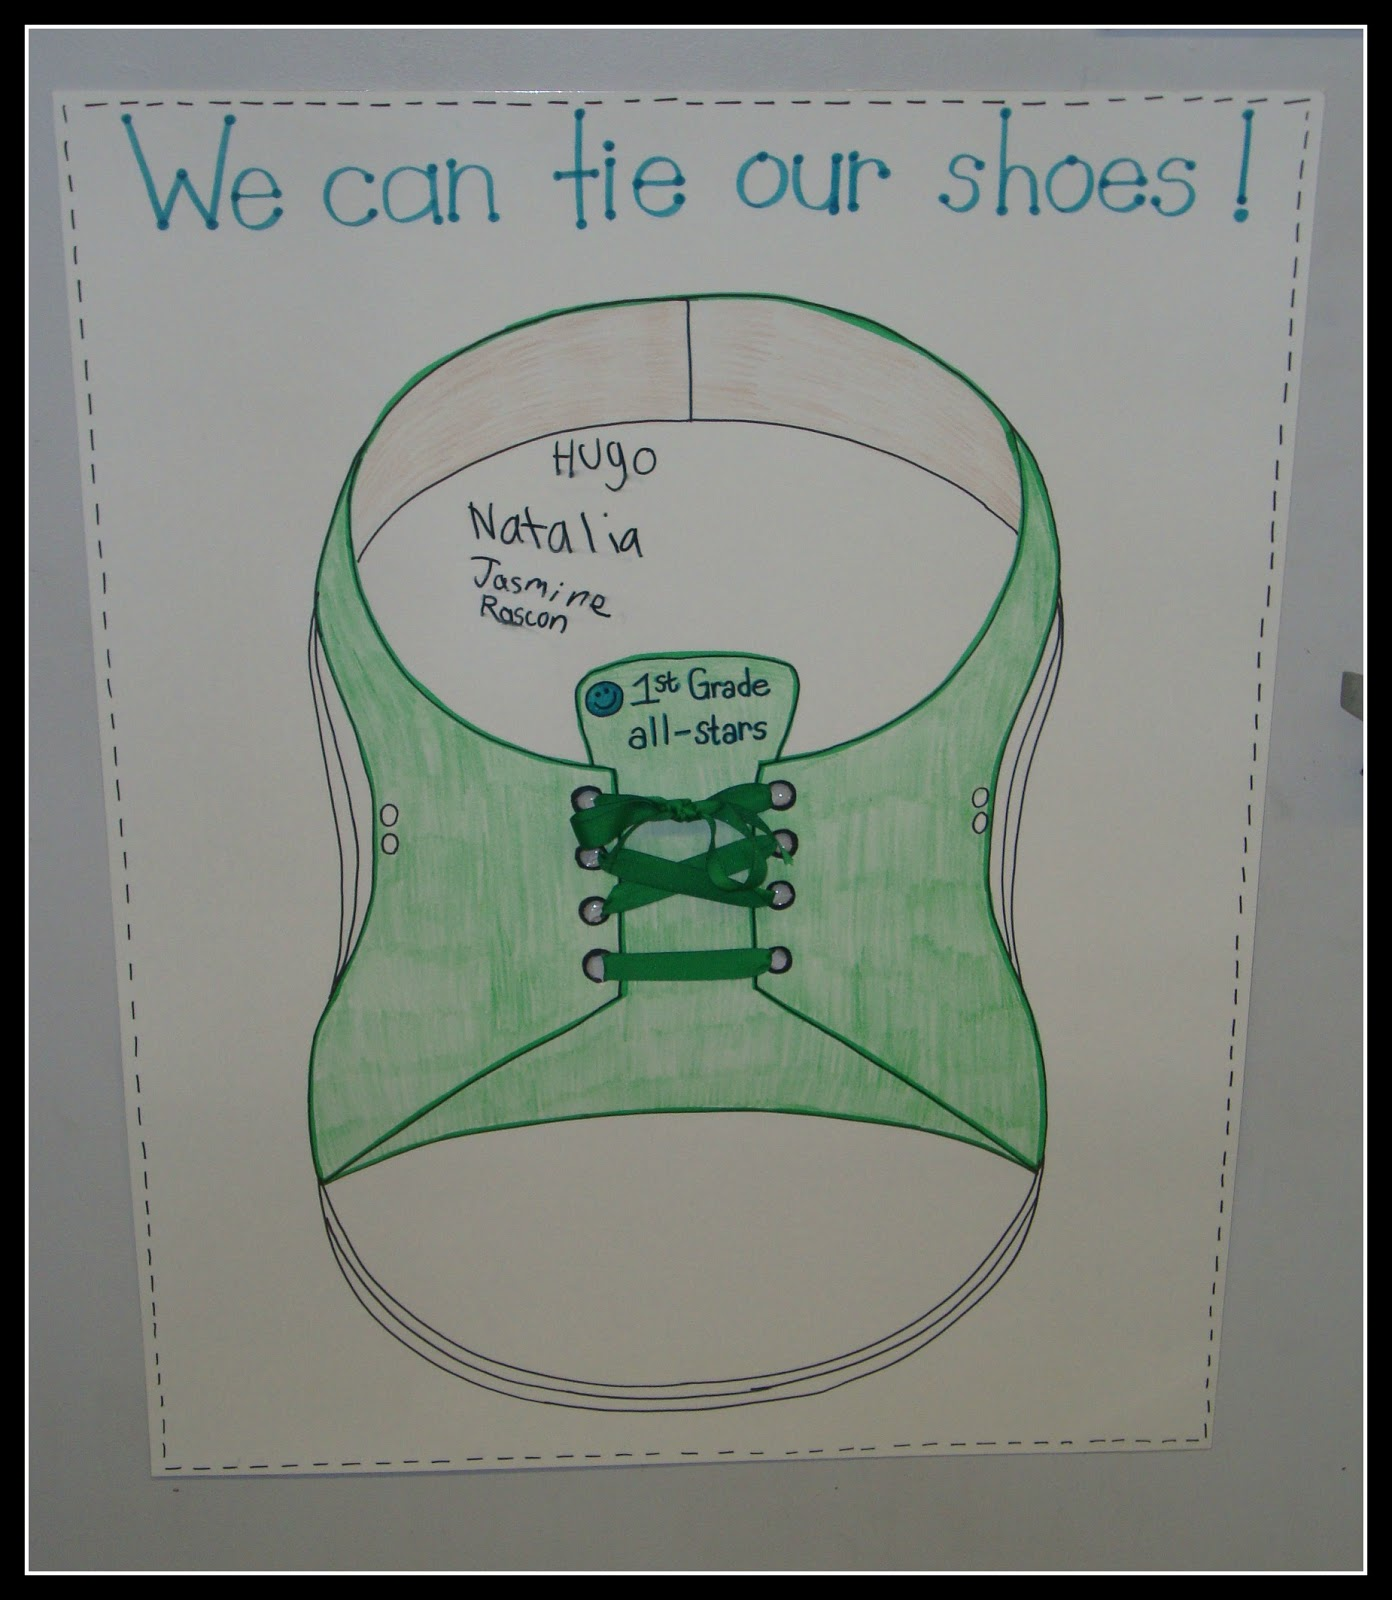 Today In First Grade Tie Your Shoes